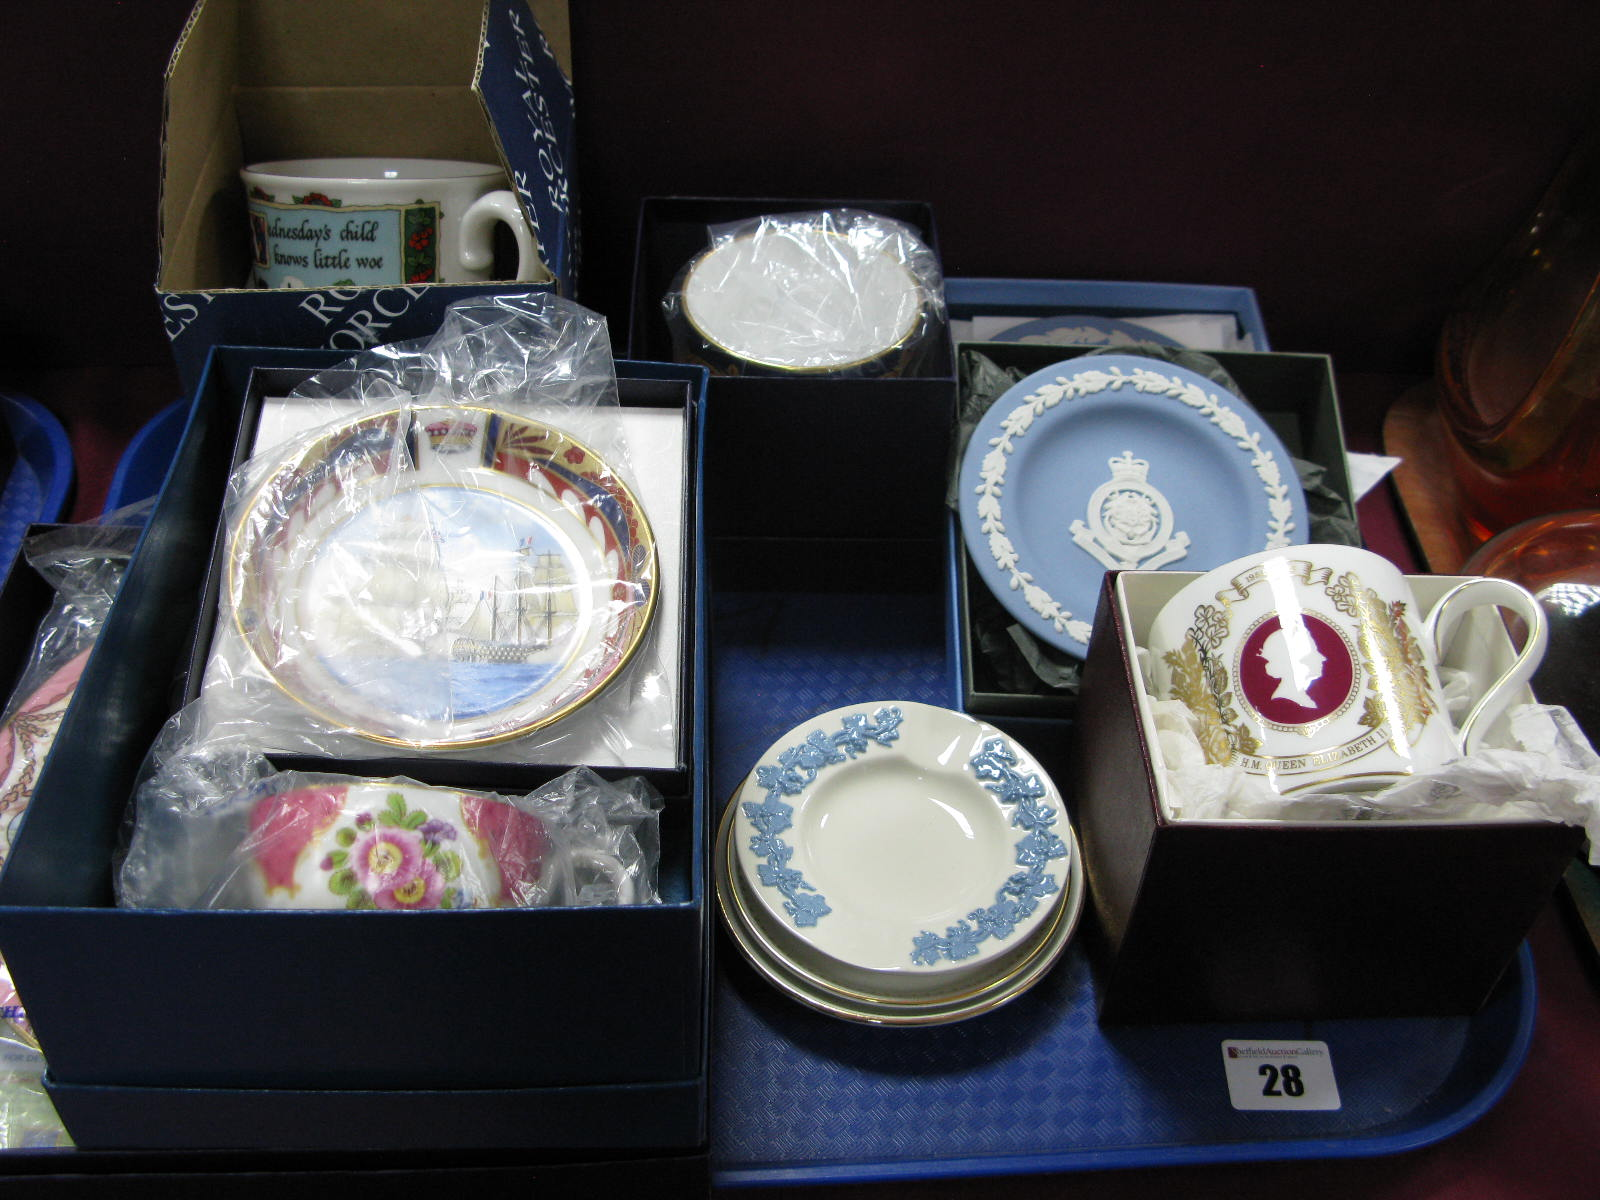 Lot 28 - Royal Worcester and Wedgwood Boxed Ceramics:- One Tray